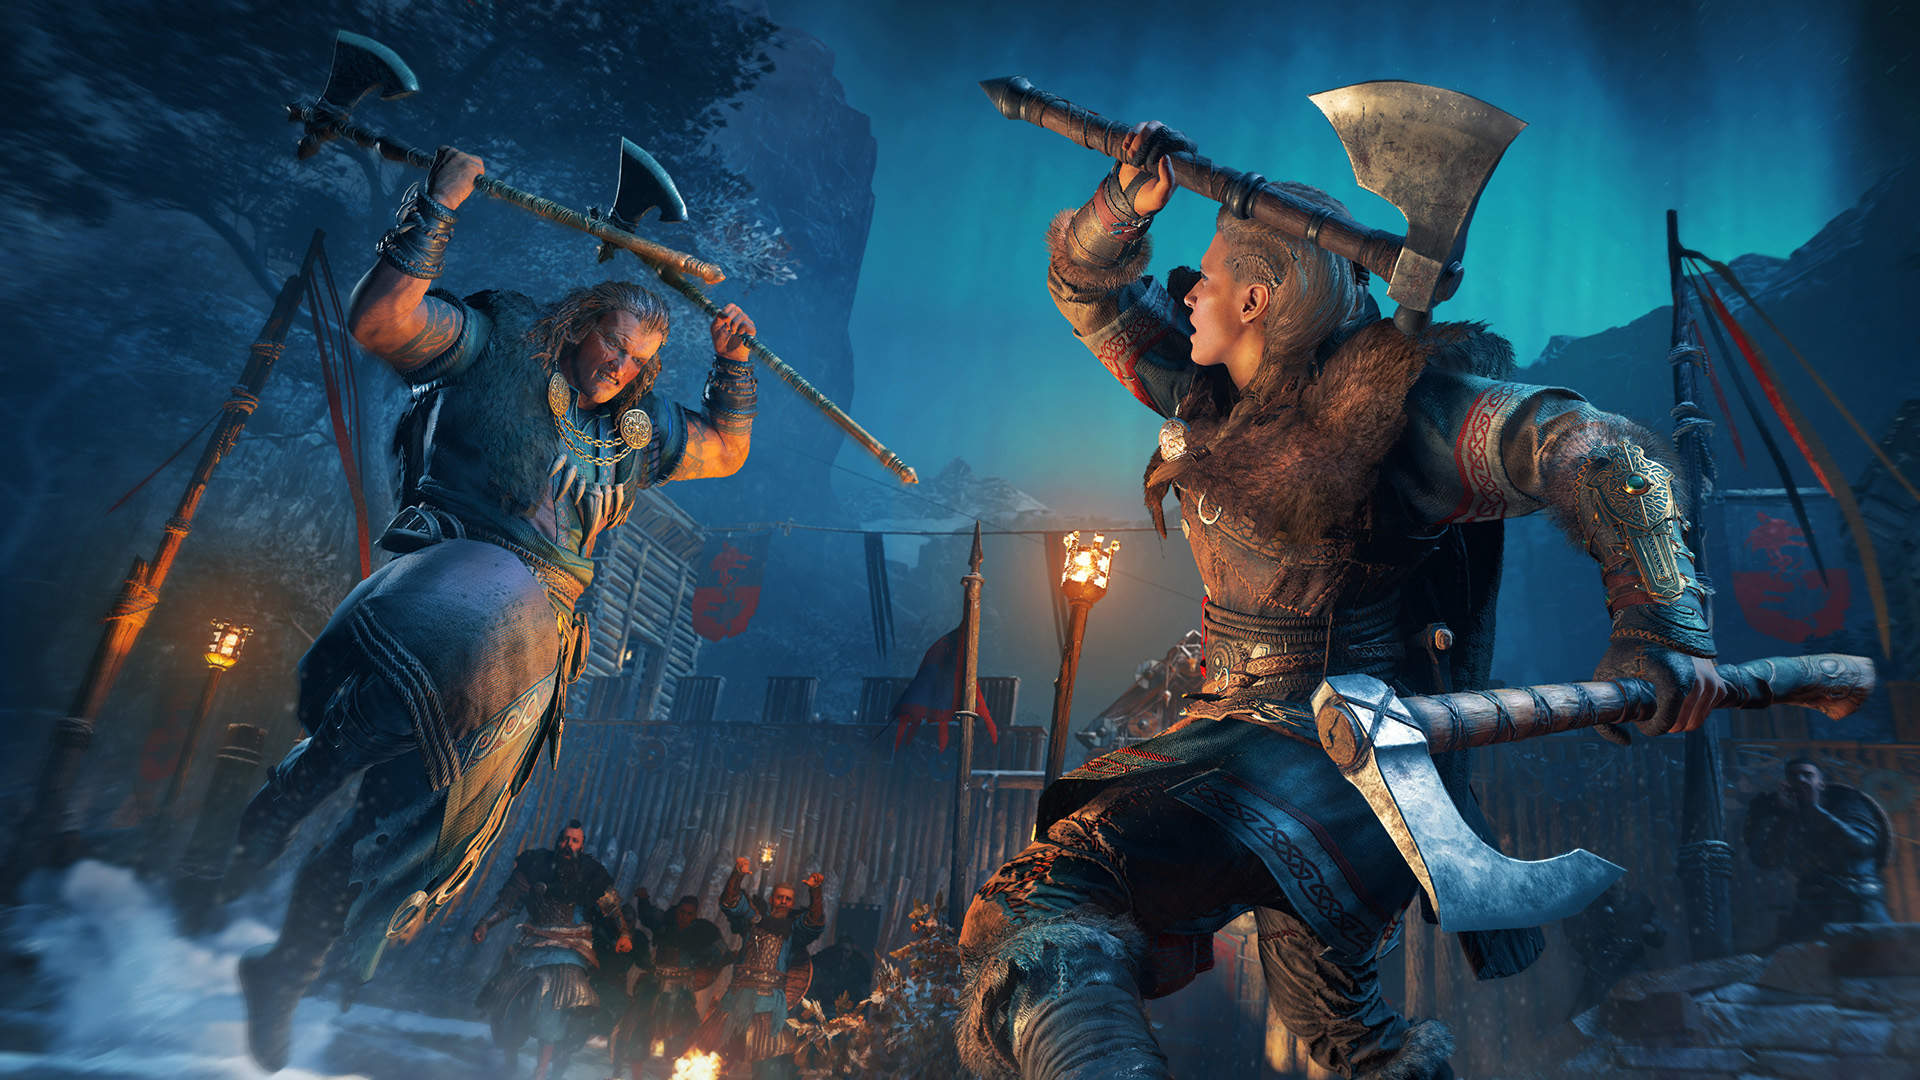 Ubisoft can't help itself, adds an XP-boosting microtransaction to Assassin's Creed Valhalla screenshot